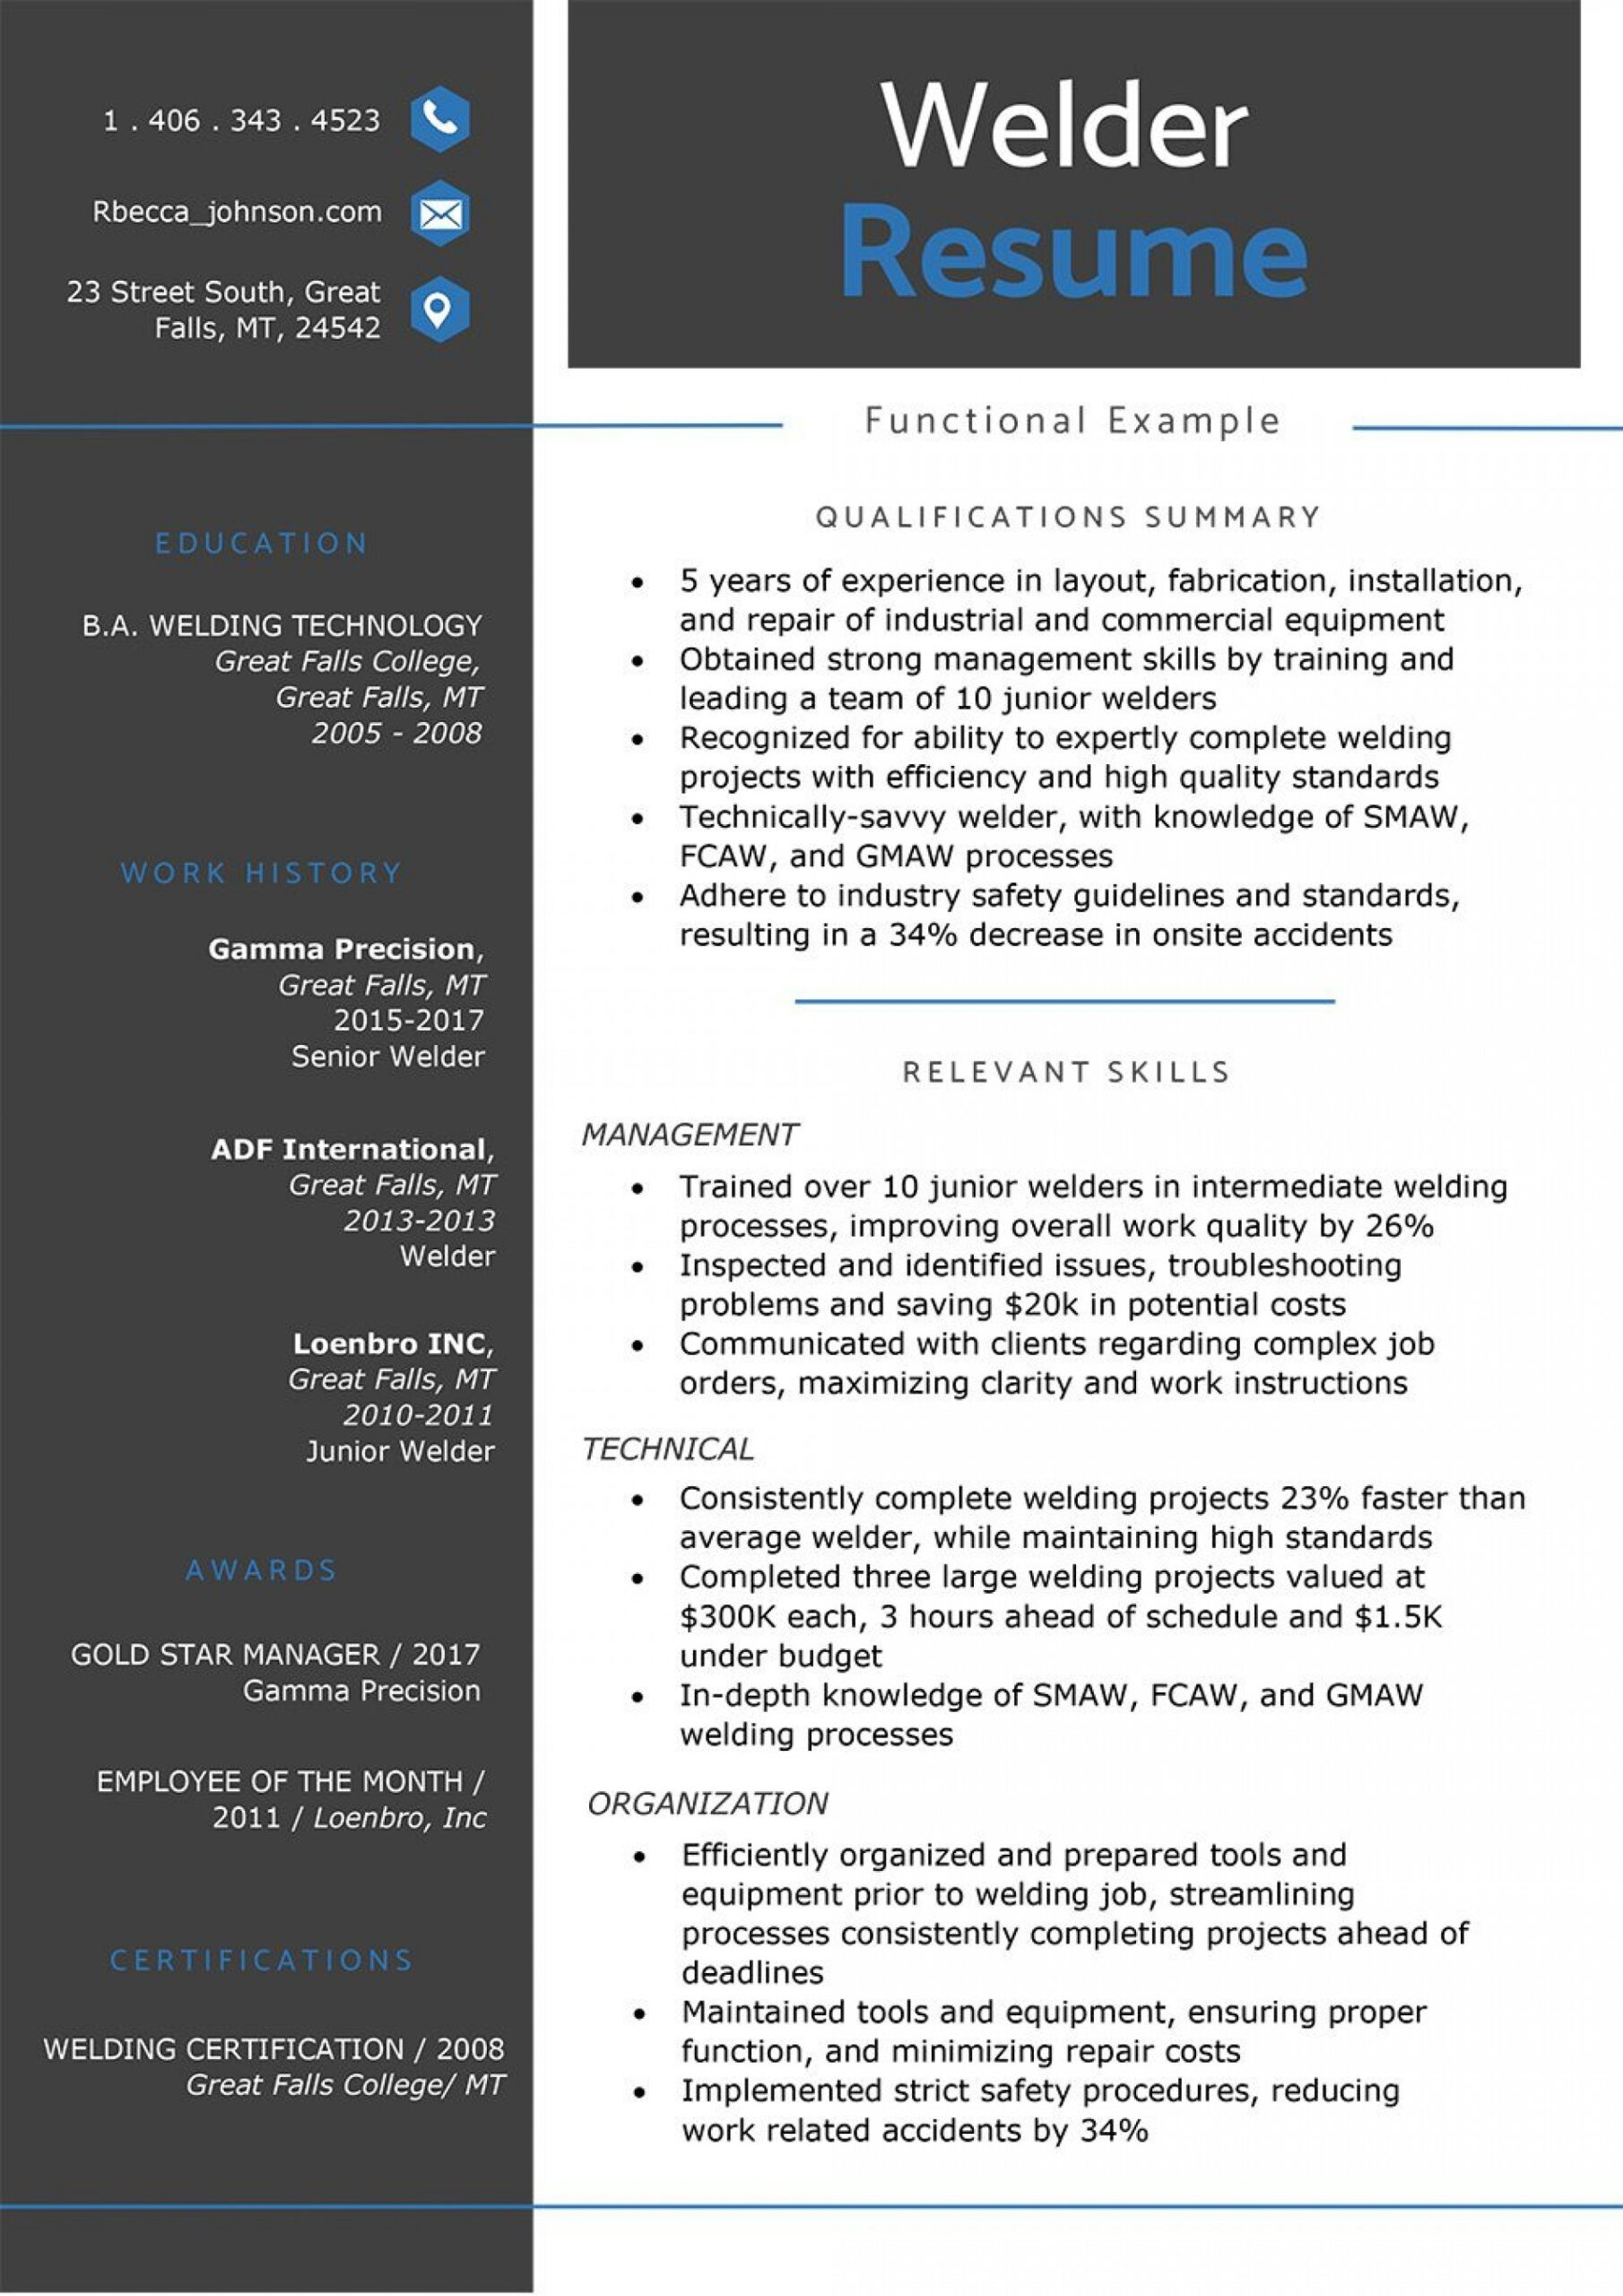 free functional resume template addictionary core remarkable ideas career objective for Resume Core Functional Resume Template